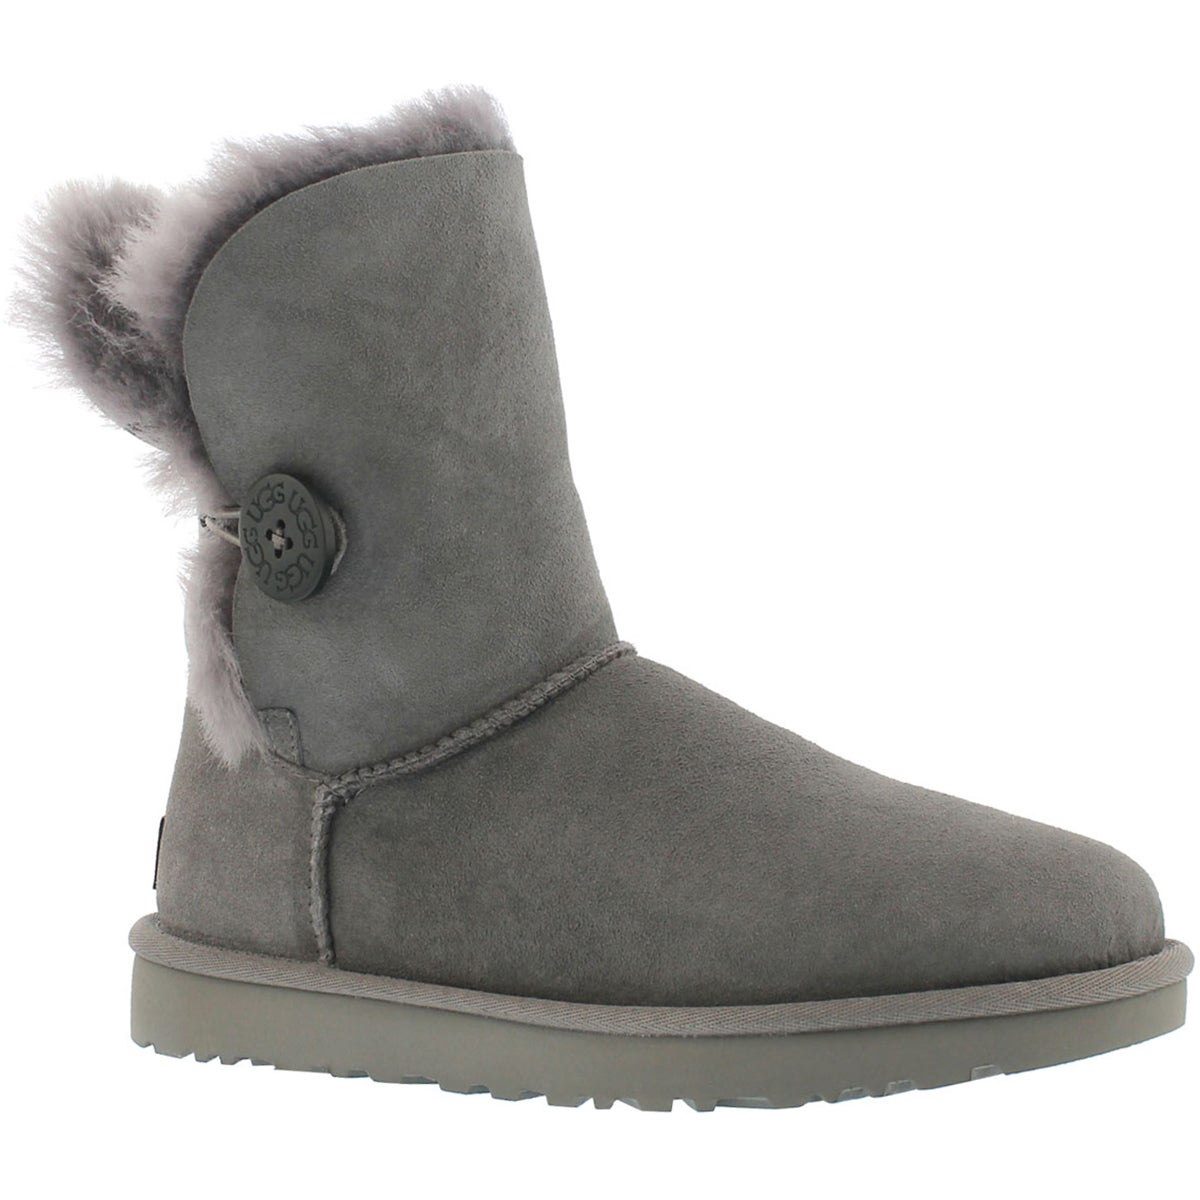 Women's BAILEY BUTTON II grey sheepskin boots